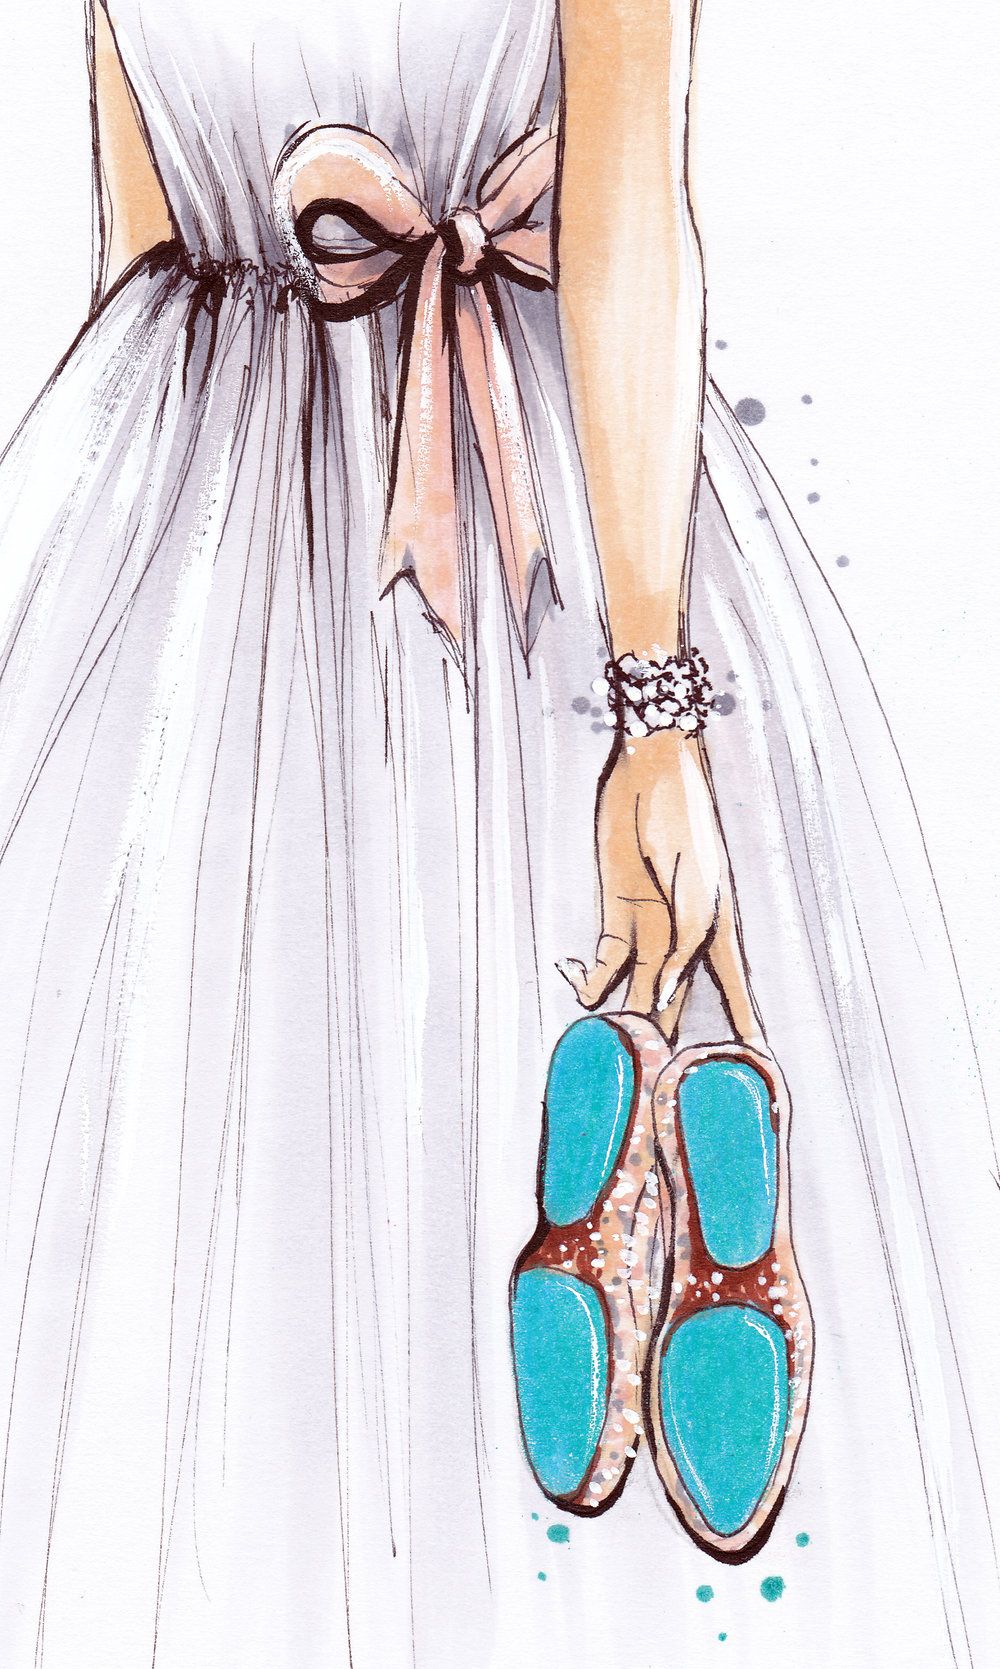 Illustration for Tieks.jpg